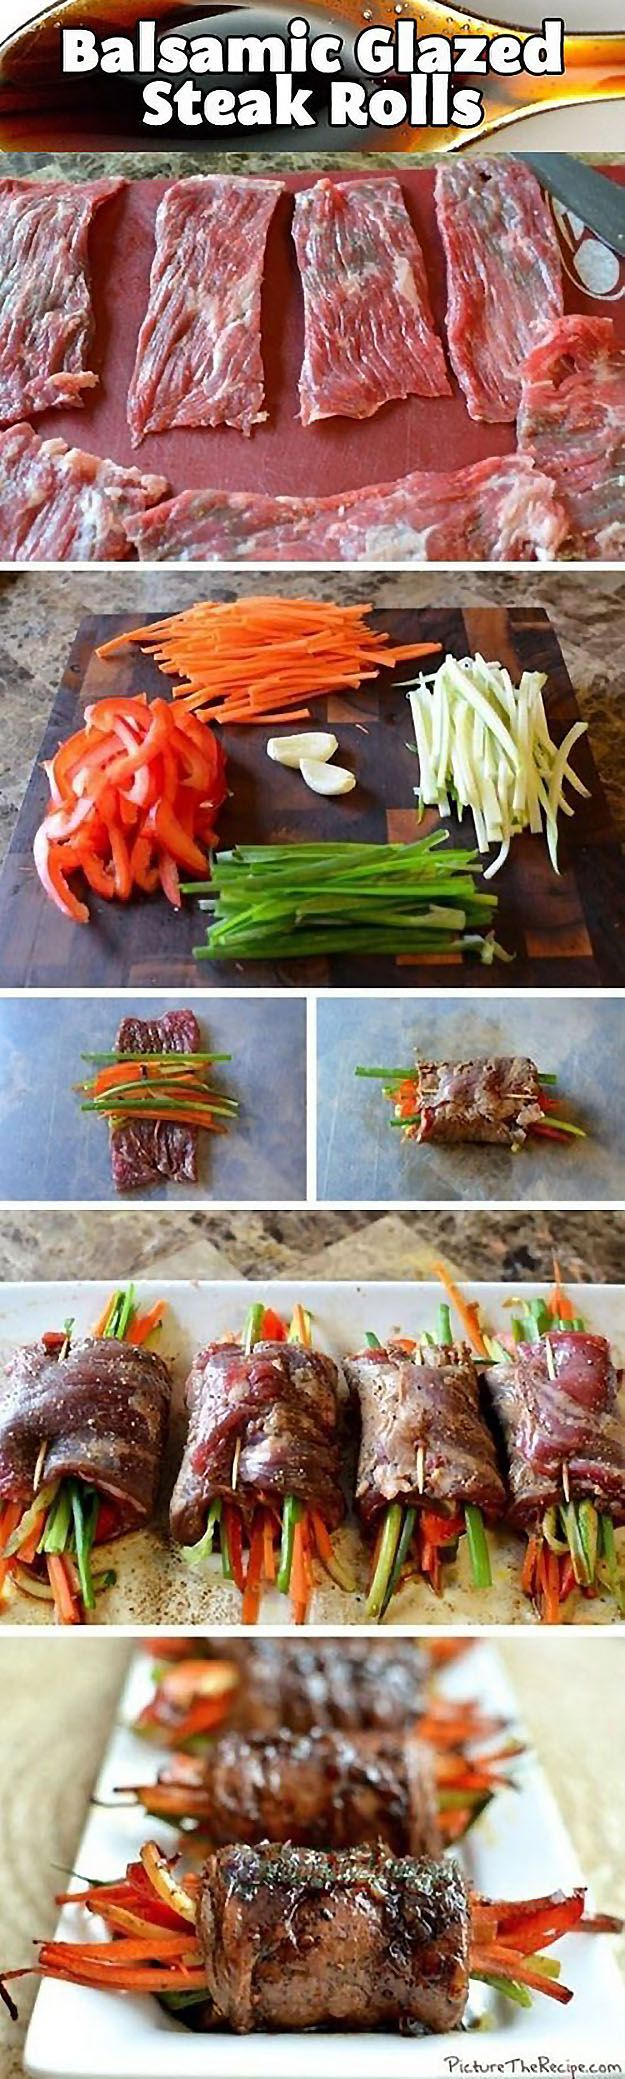 Best 4th of July Recipes and Backyard BBQ ideas - Balsamic Glazed Steak Rolls